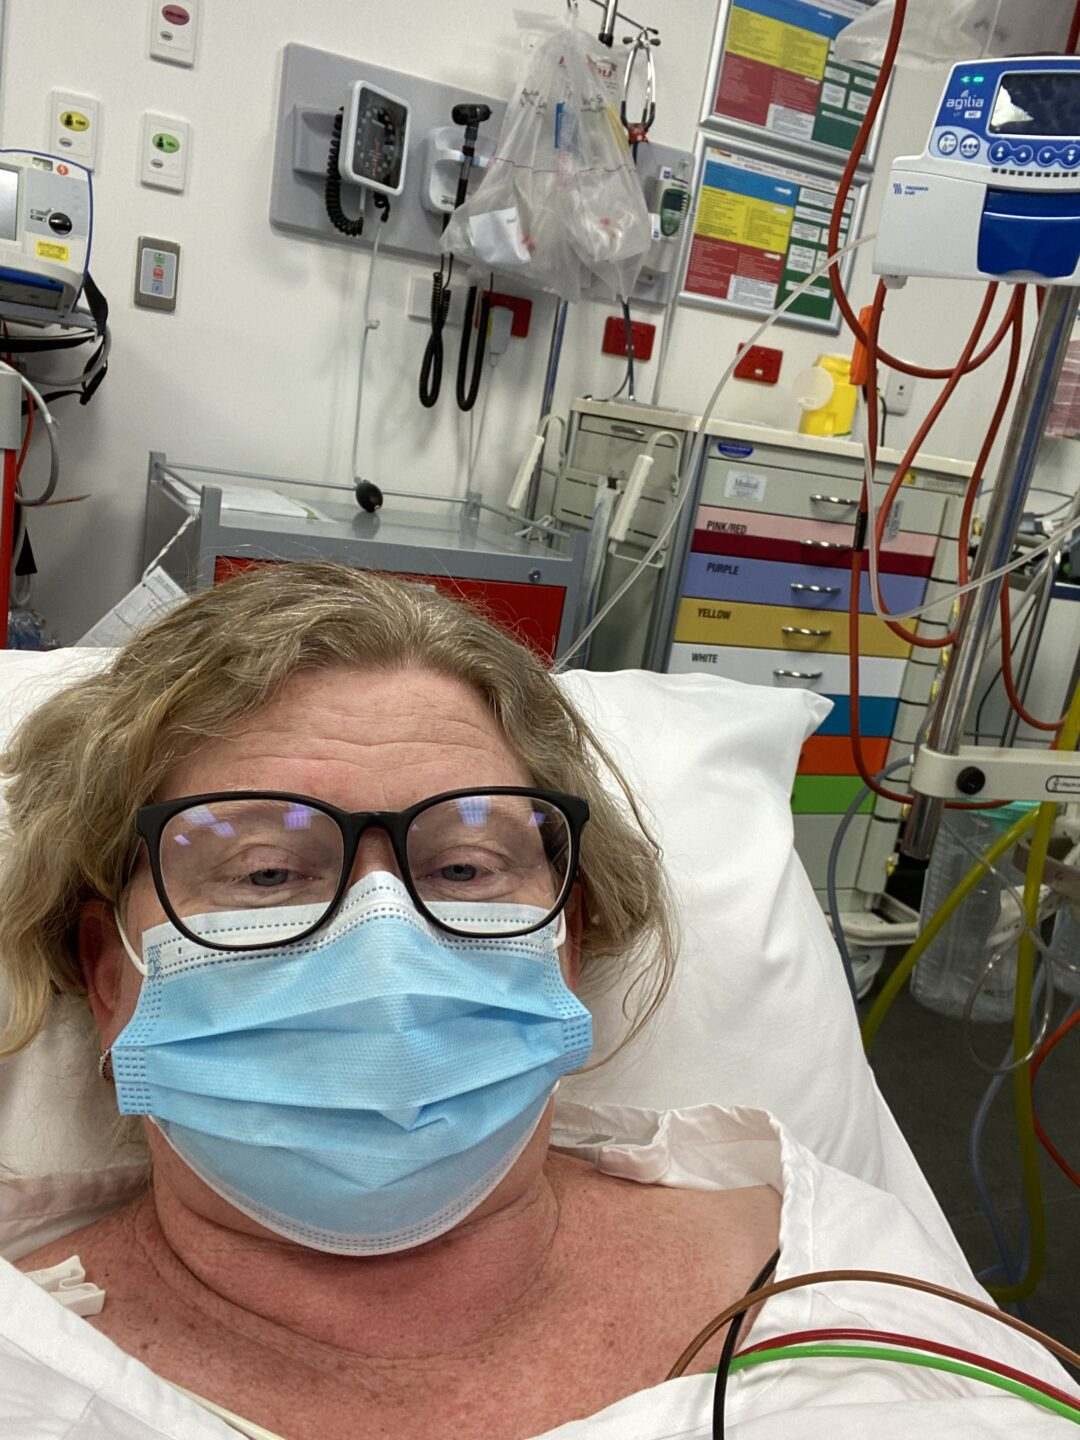 A women with blonde hair and glasses in a medical mask in a hospital bed